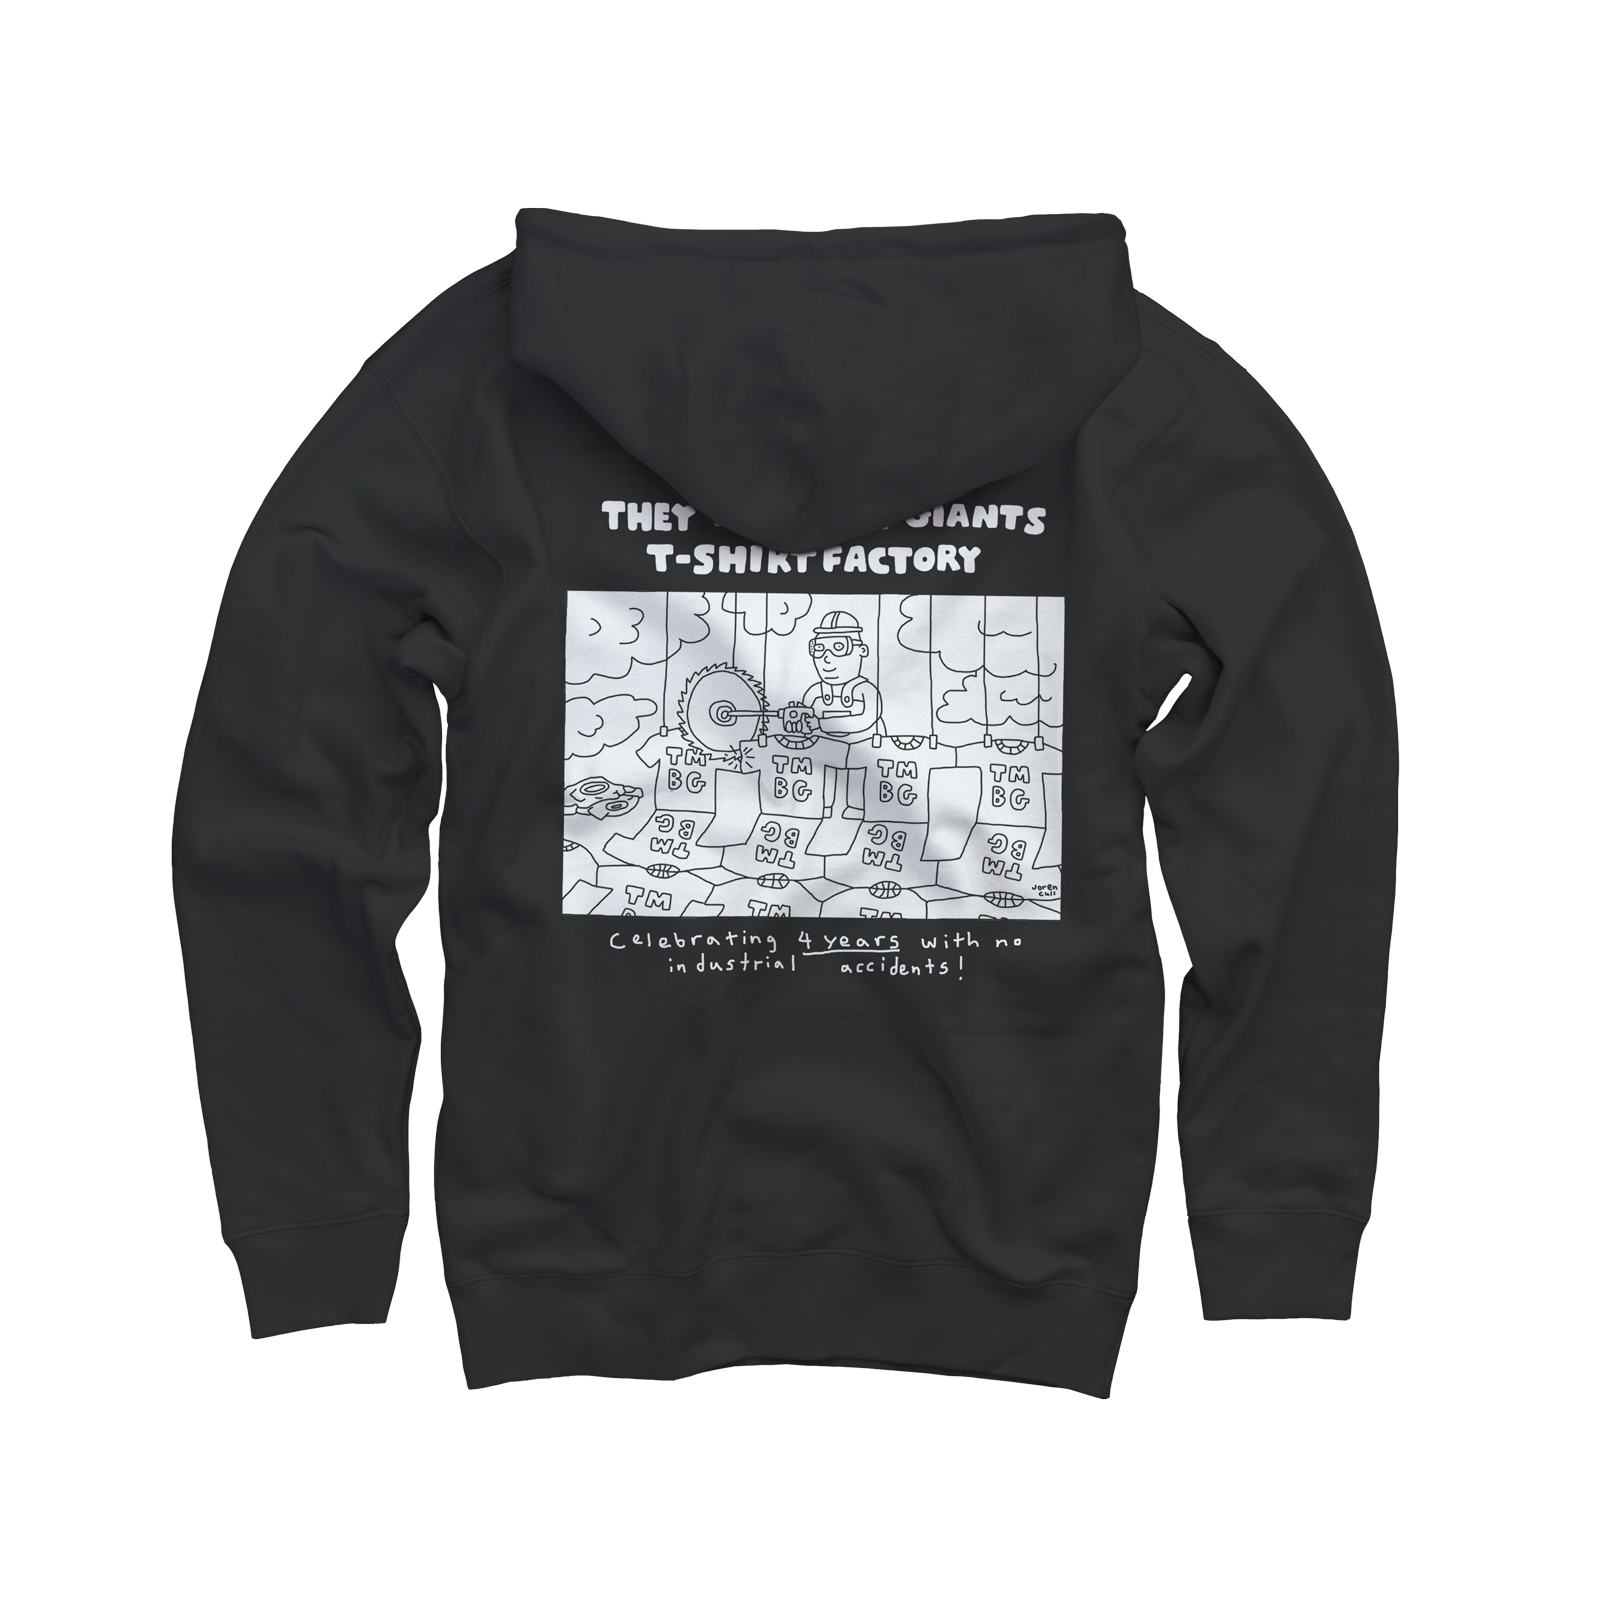 97fa0b18 They Might Be Giants - T-Shirt Factory Road Crew Zip Hoodie